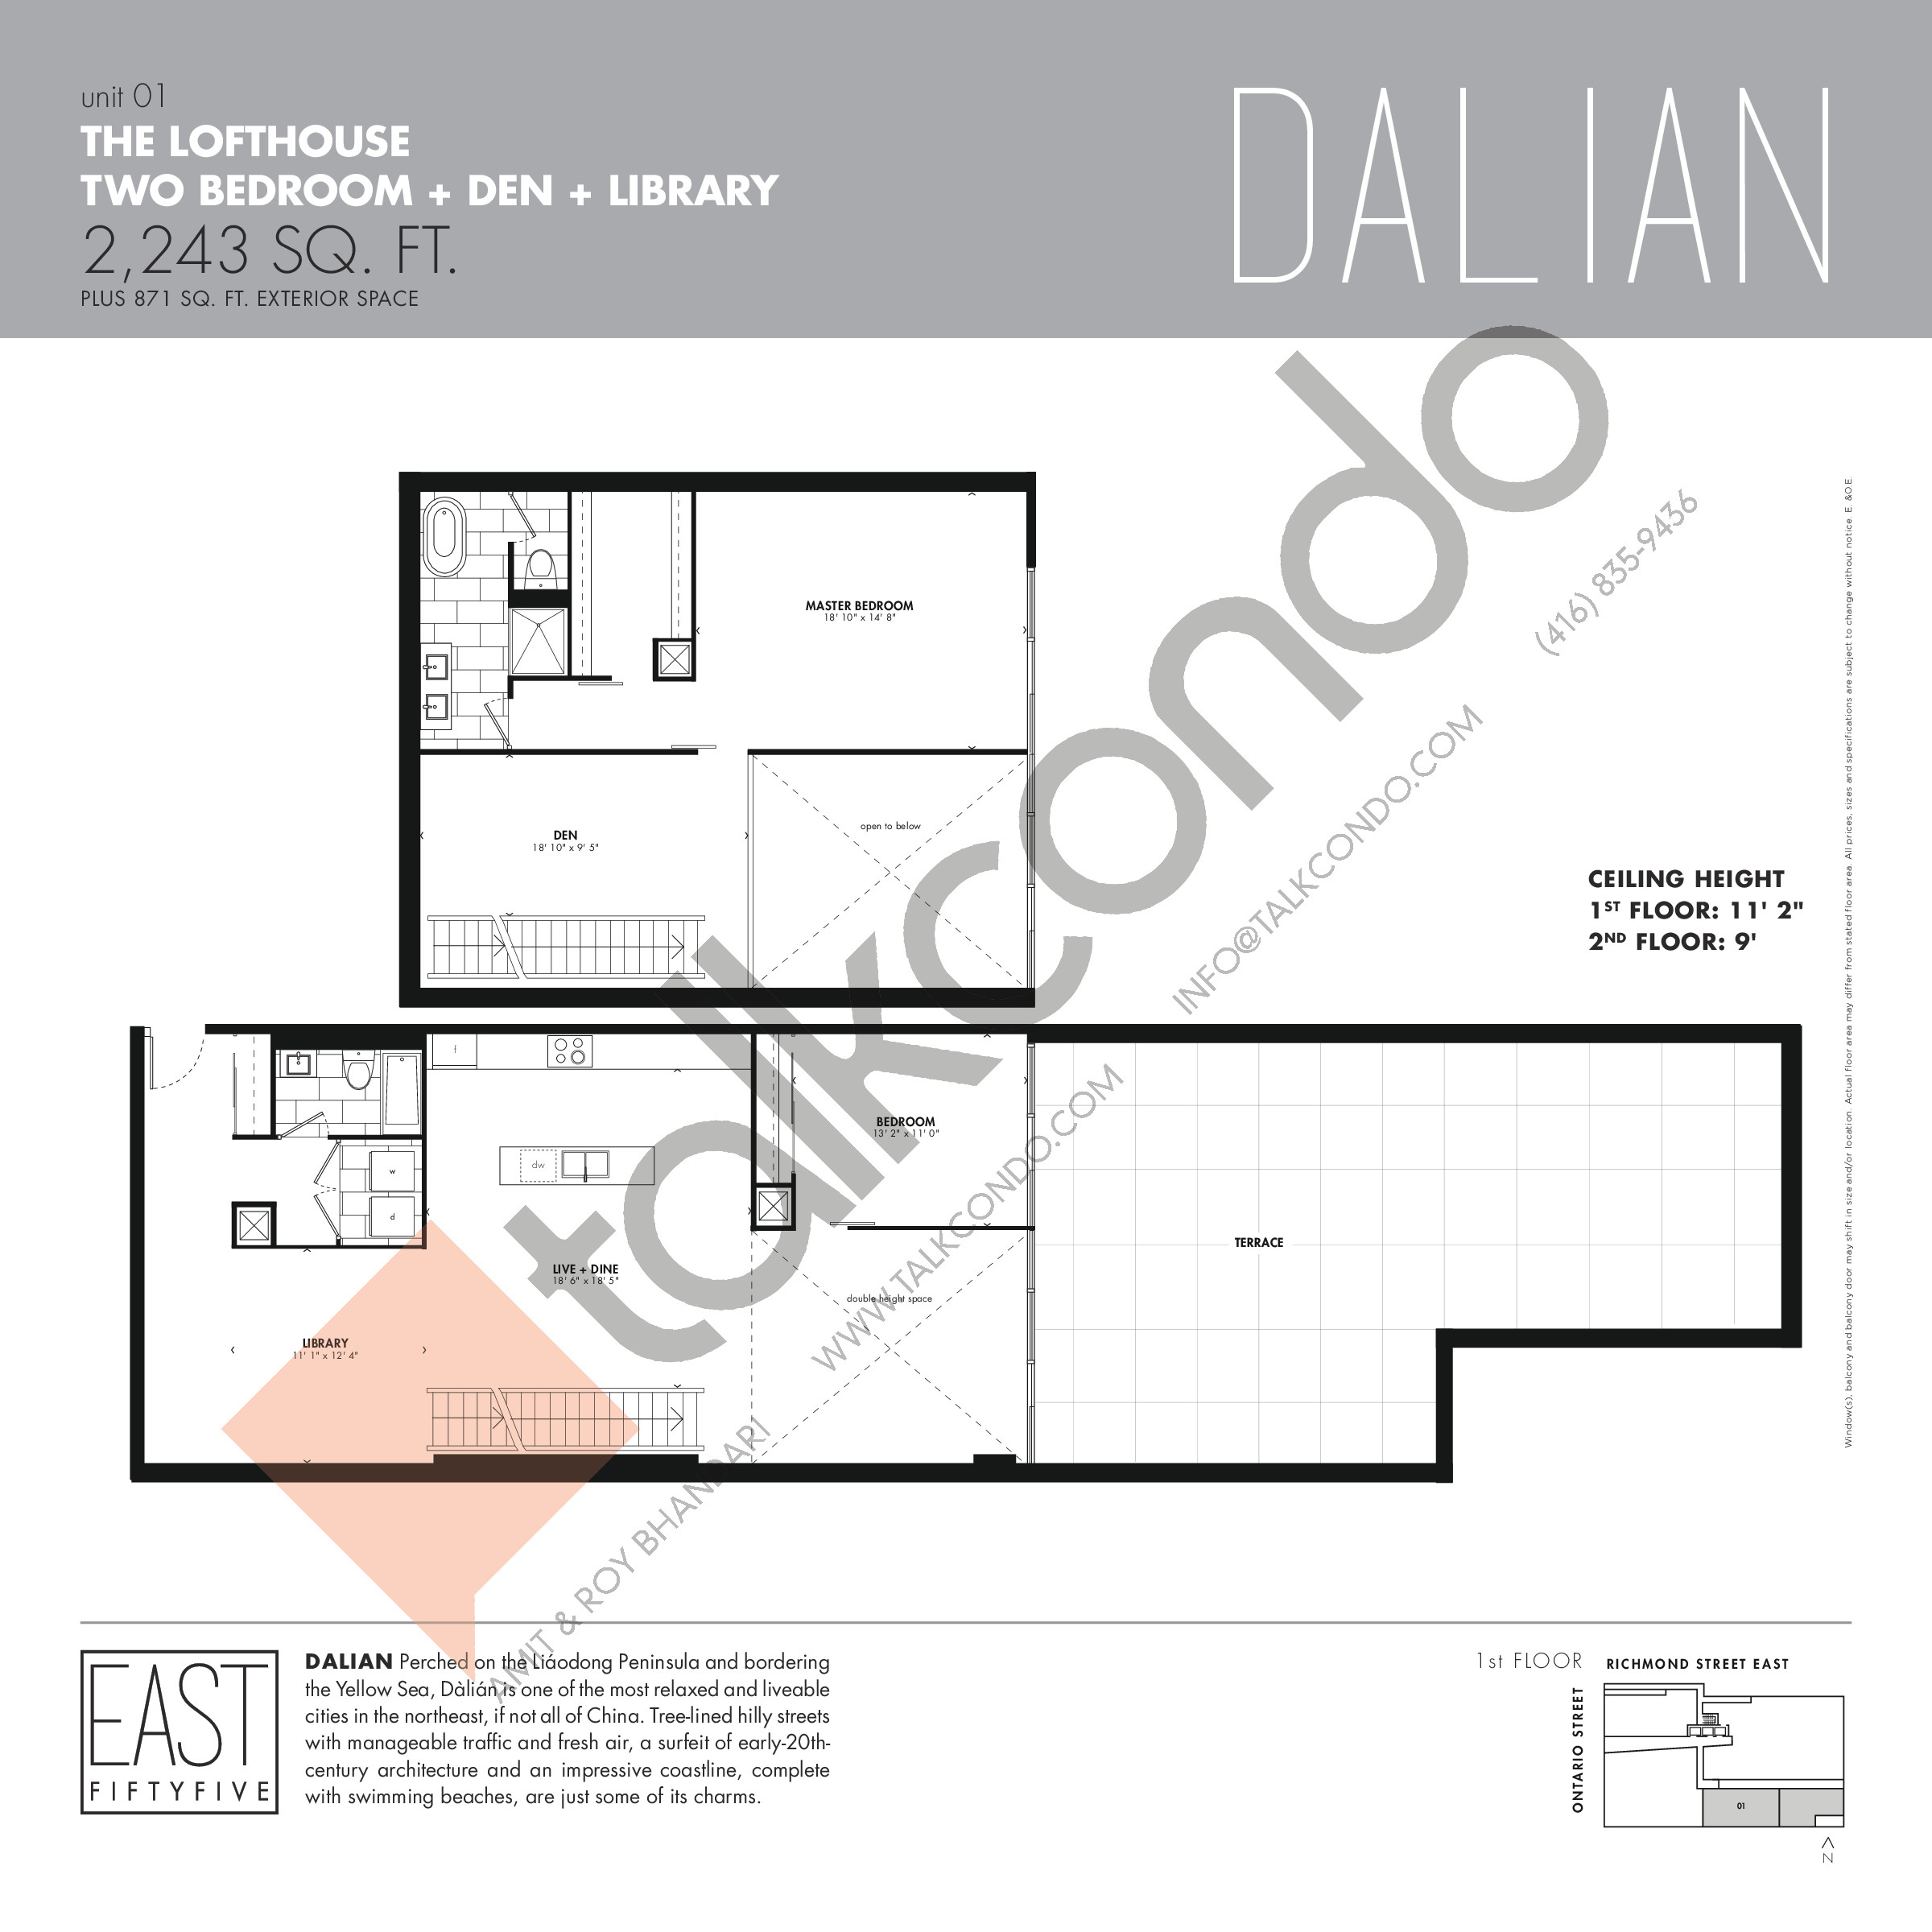 Dalian Floor Plan at East 55 Condos - 2243 sq.ft